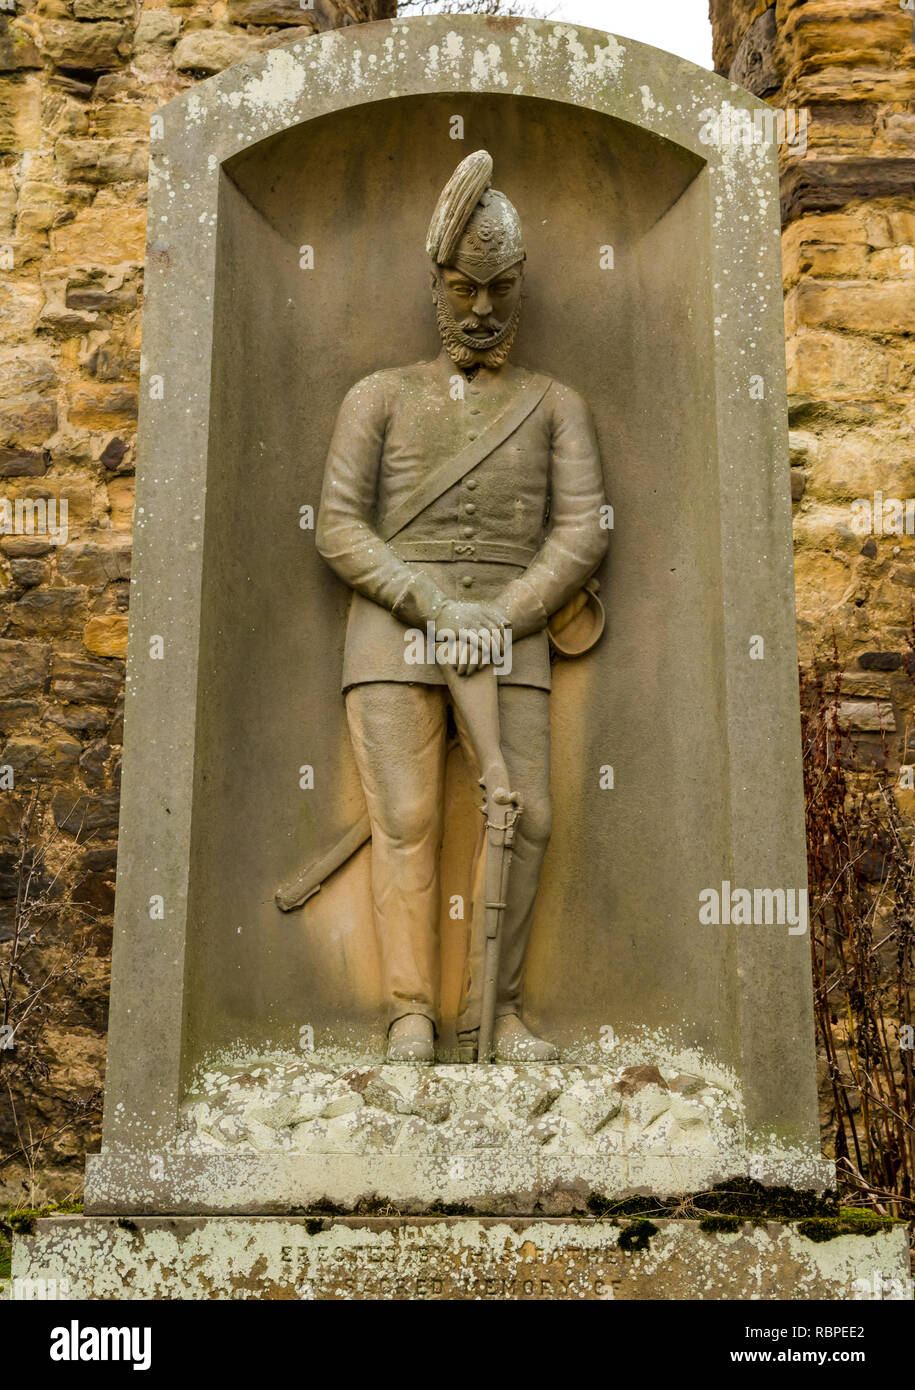 Gravestone memorial of soldier Colonel James Ainslie Younger of Elvingston, Gladsmuir churchyard, East Lothian, Scotland, UK - Stock Image